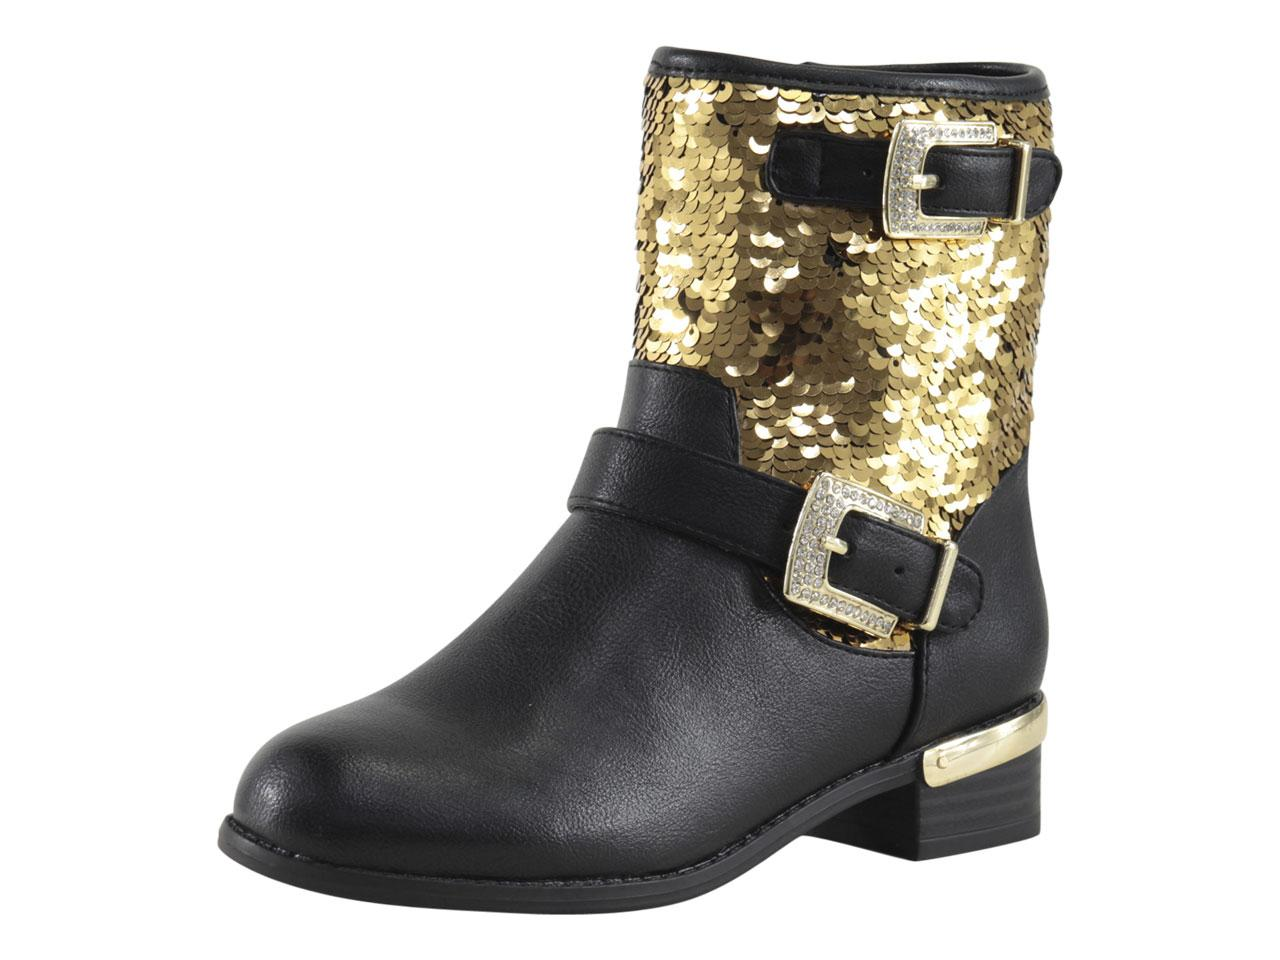 5e8ff2143 Vince Camuto Little/Big Girl's Winika Sequin Moto Boots Shoes